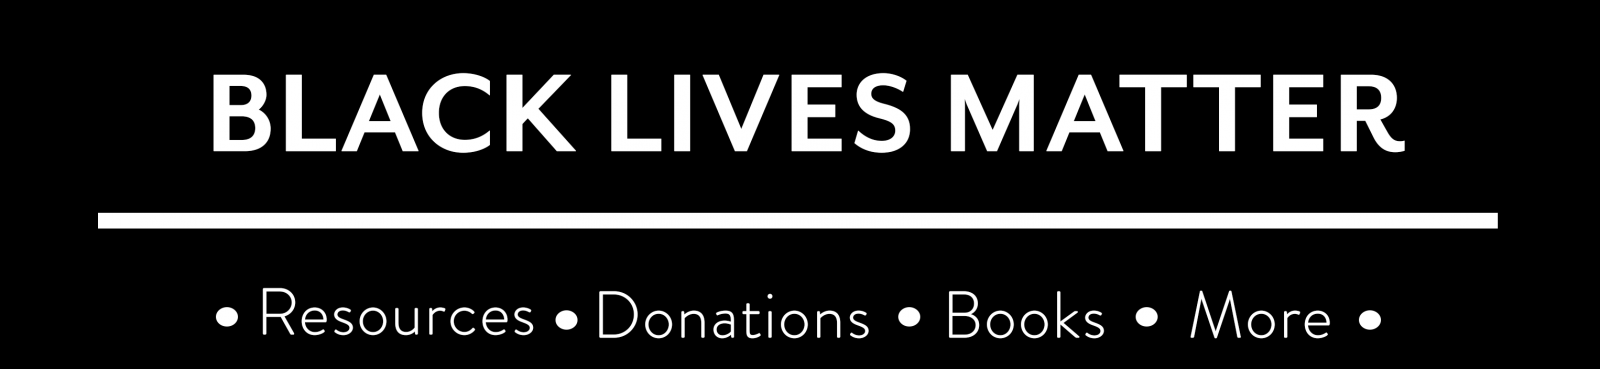 Black Lives Still Matter. Resources, Donations, Books and more.